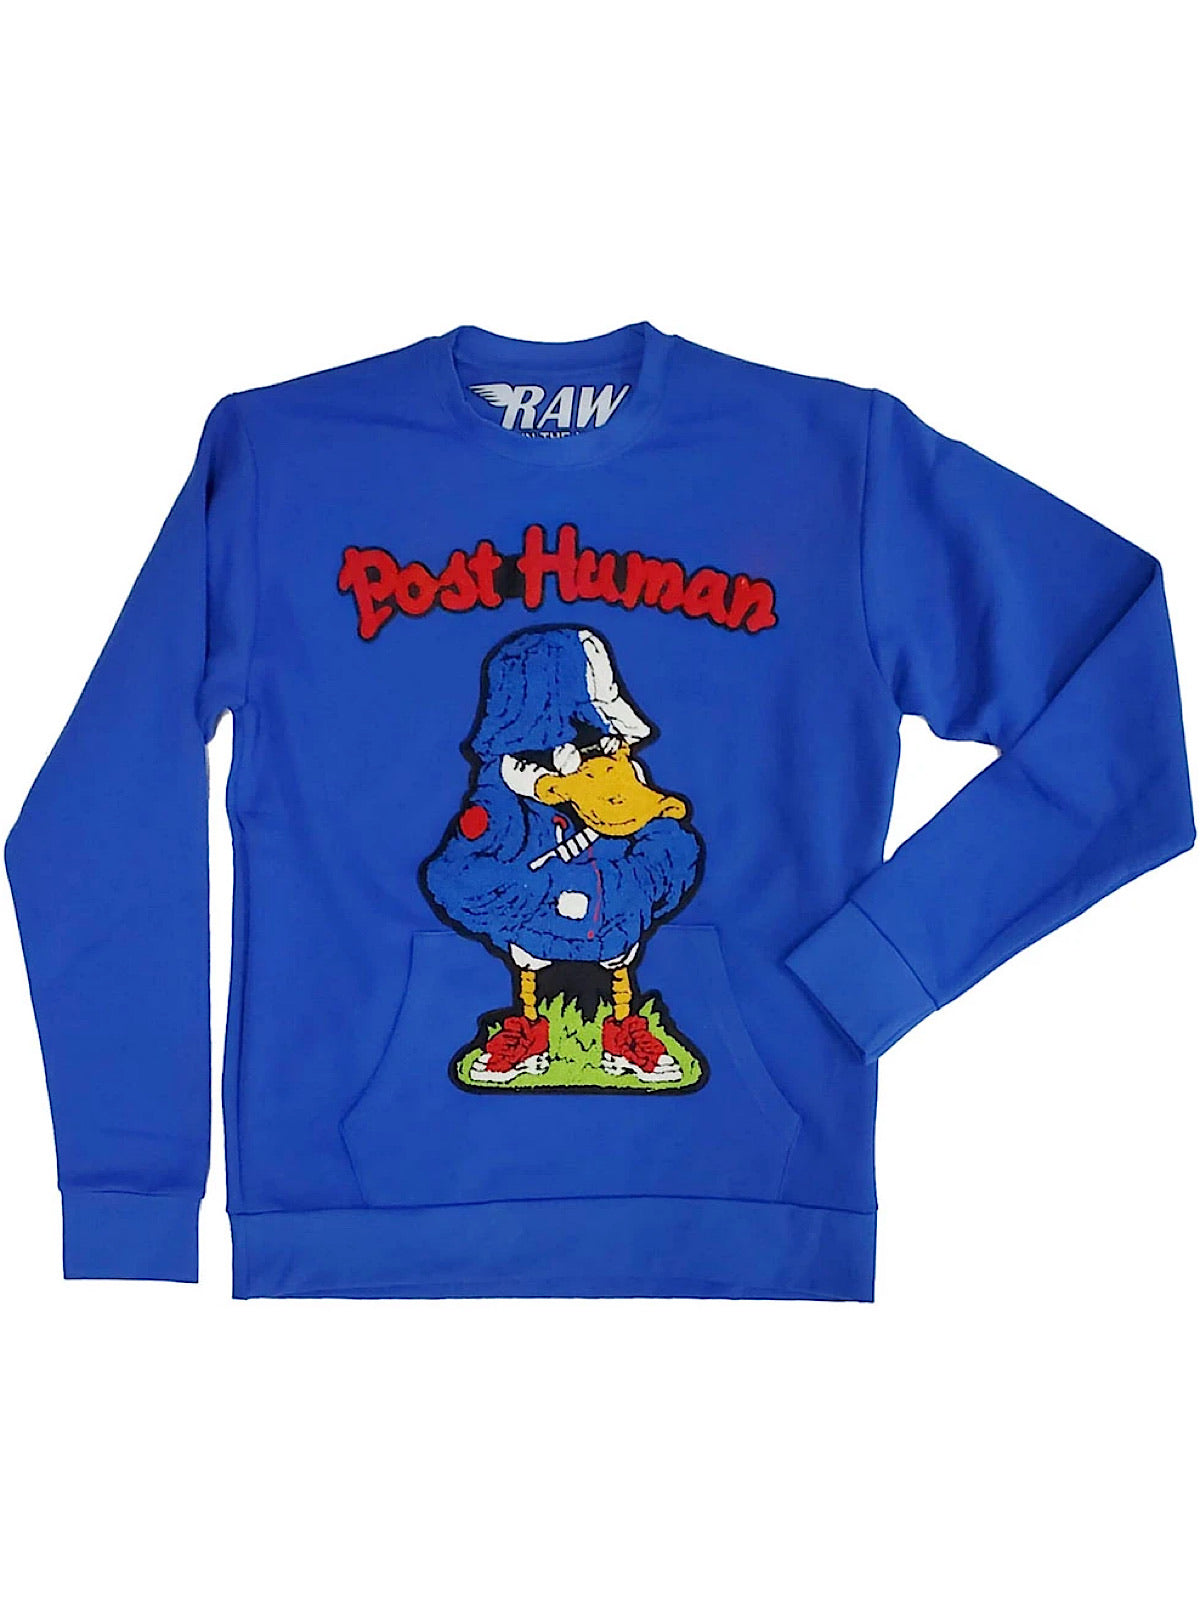 Rawyalty Sweater - Post Human - Royal